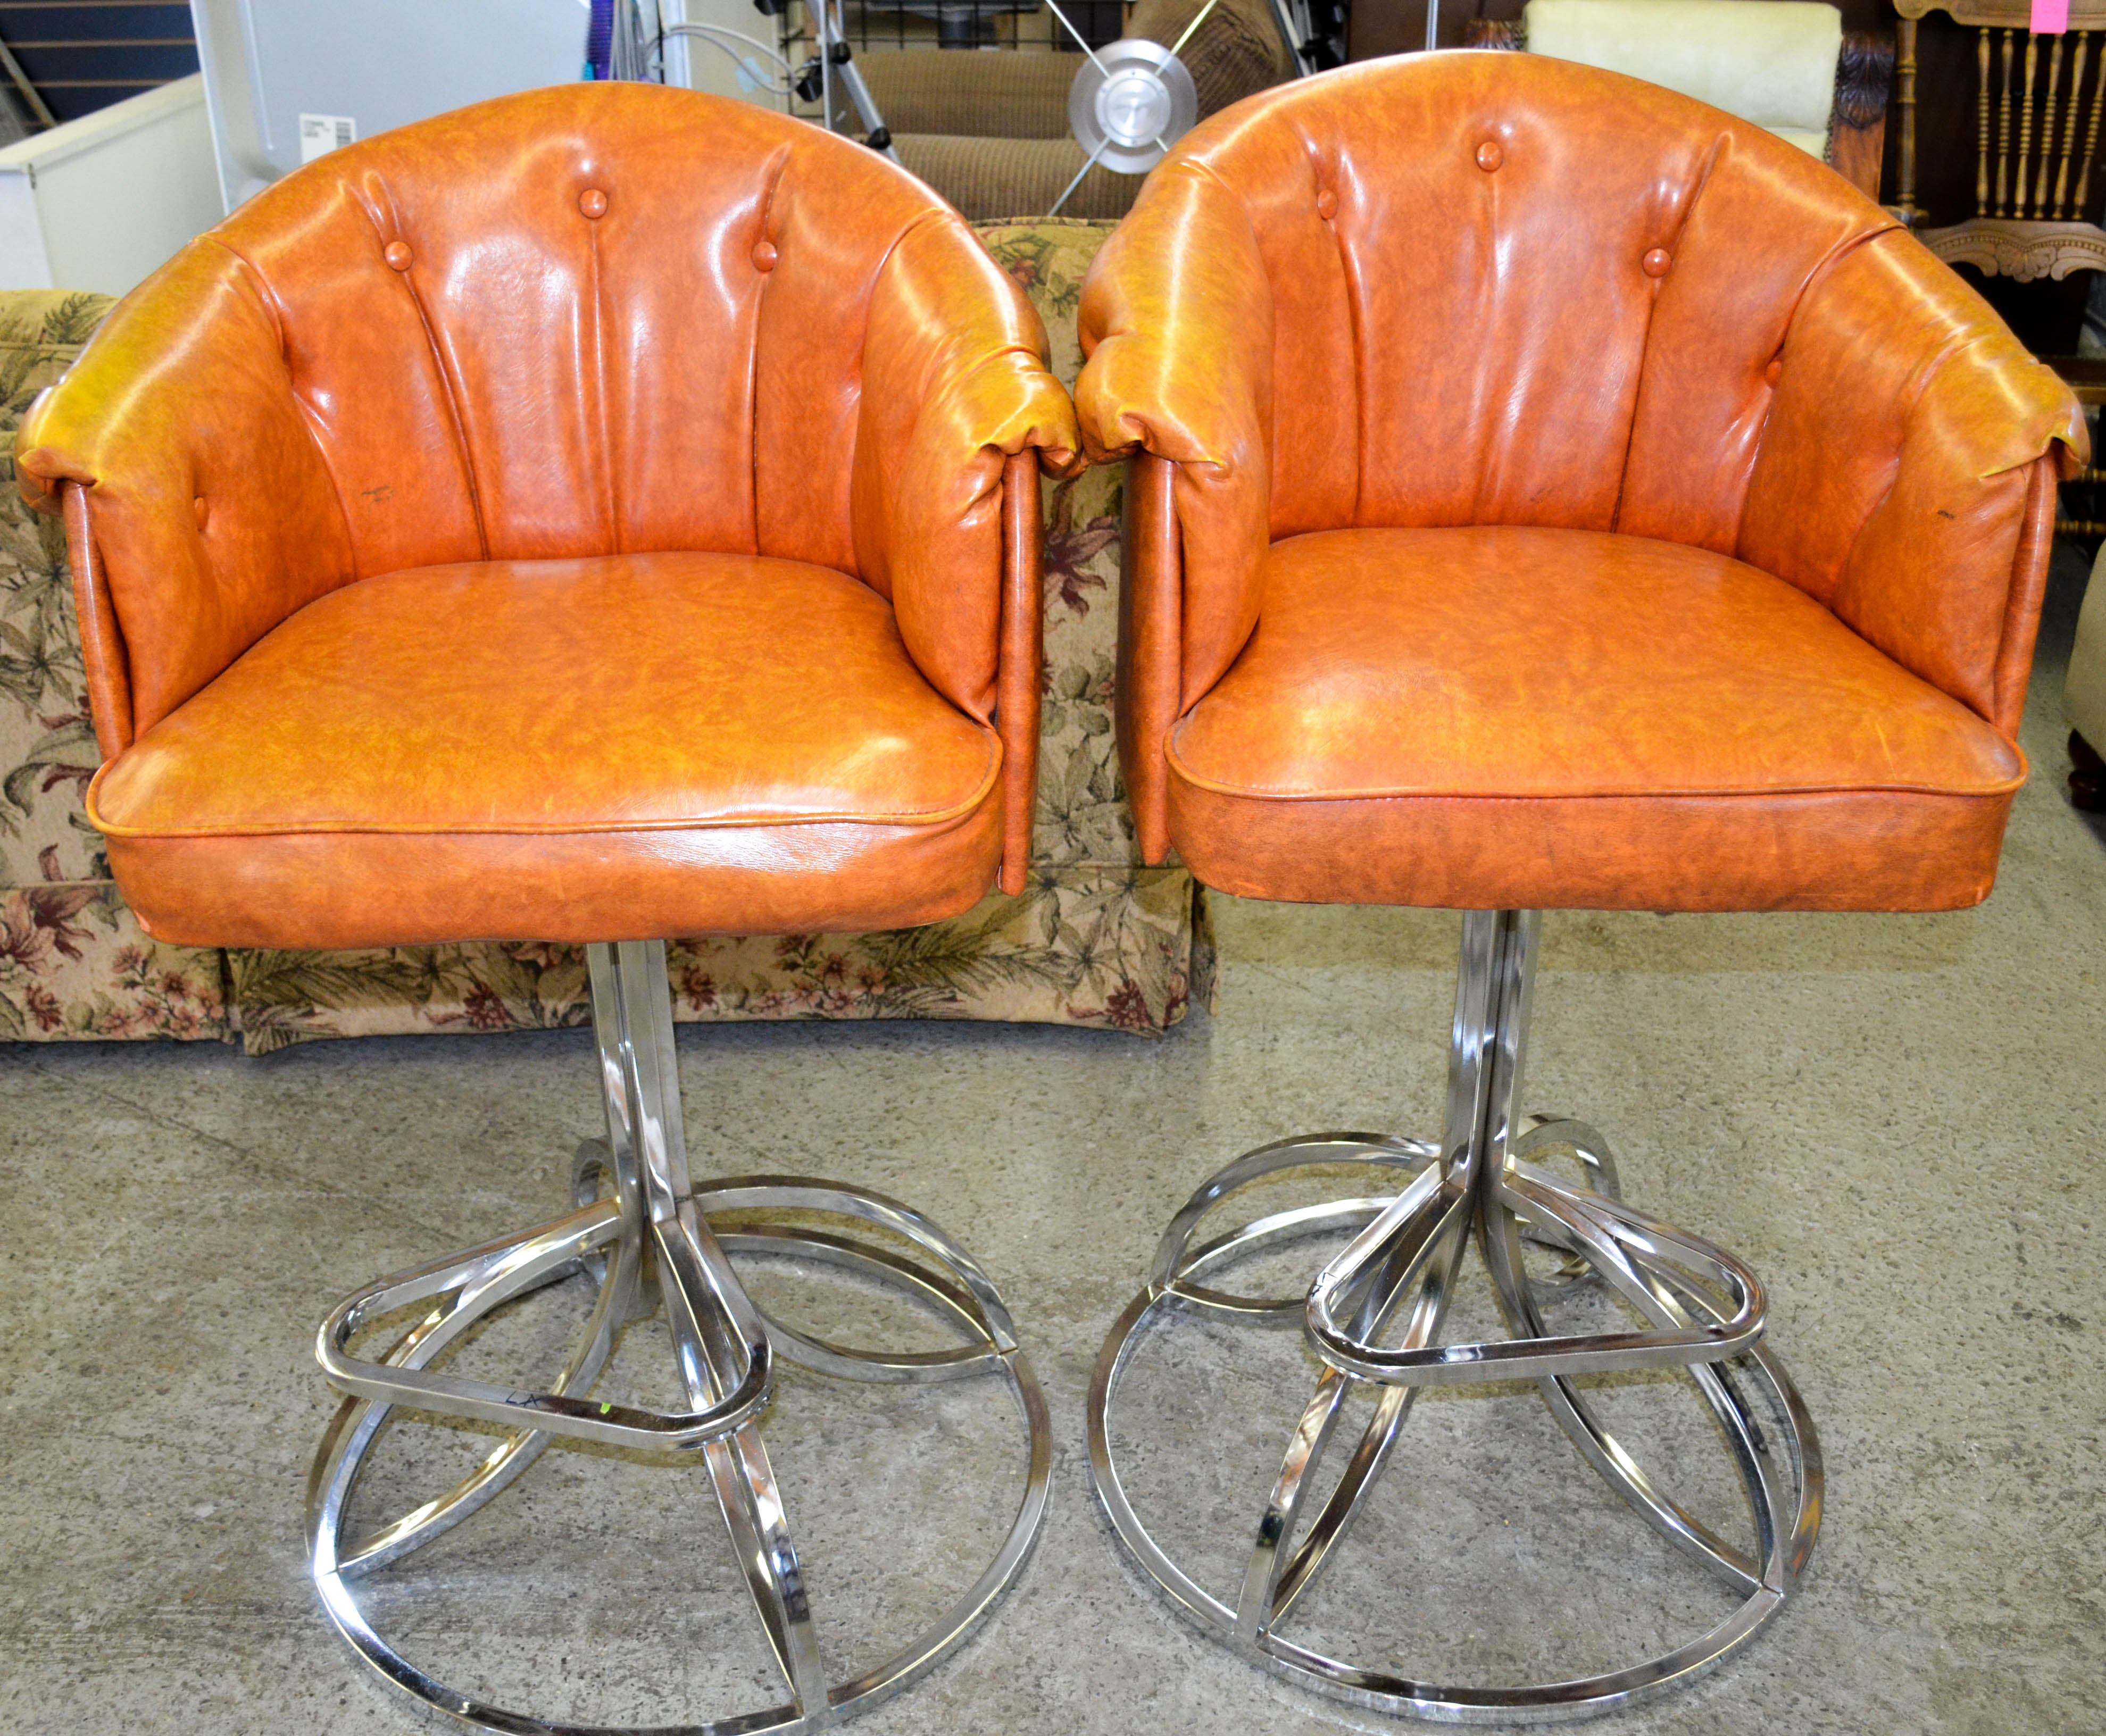 123 Orange Stool Chairs